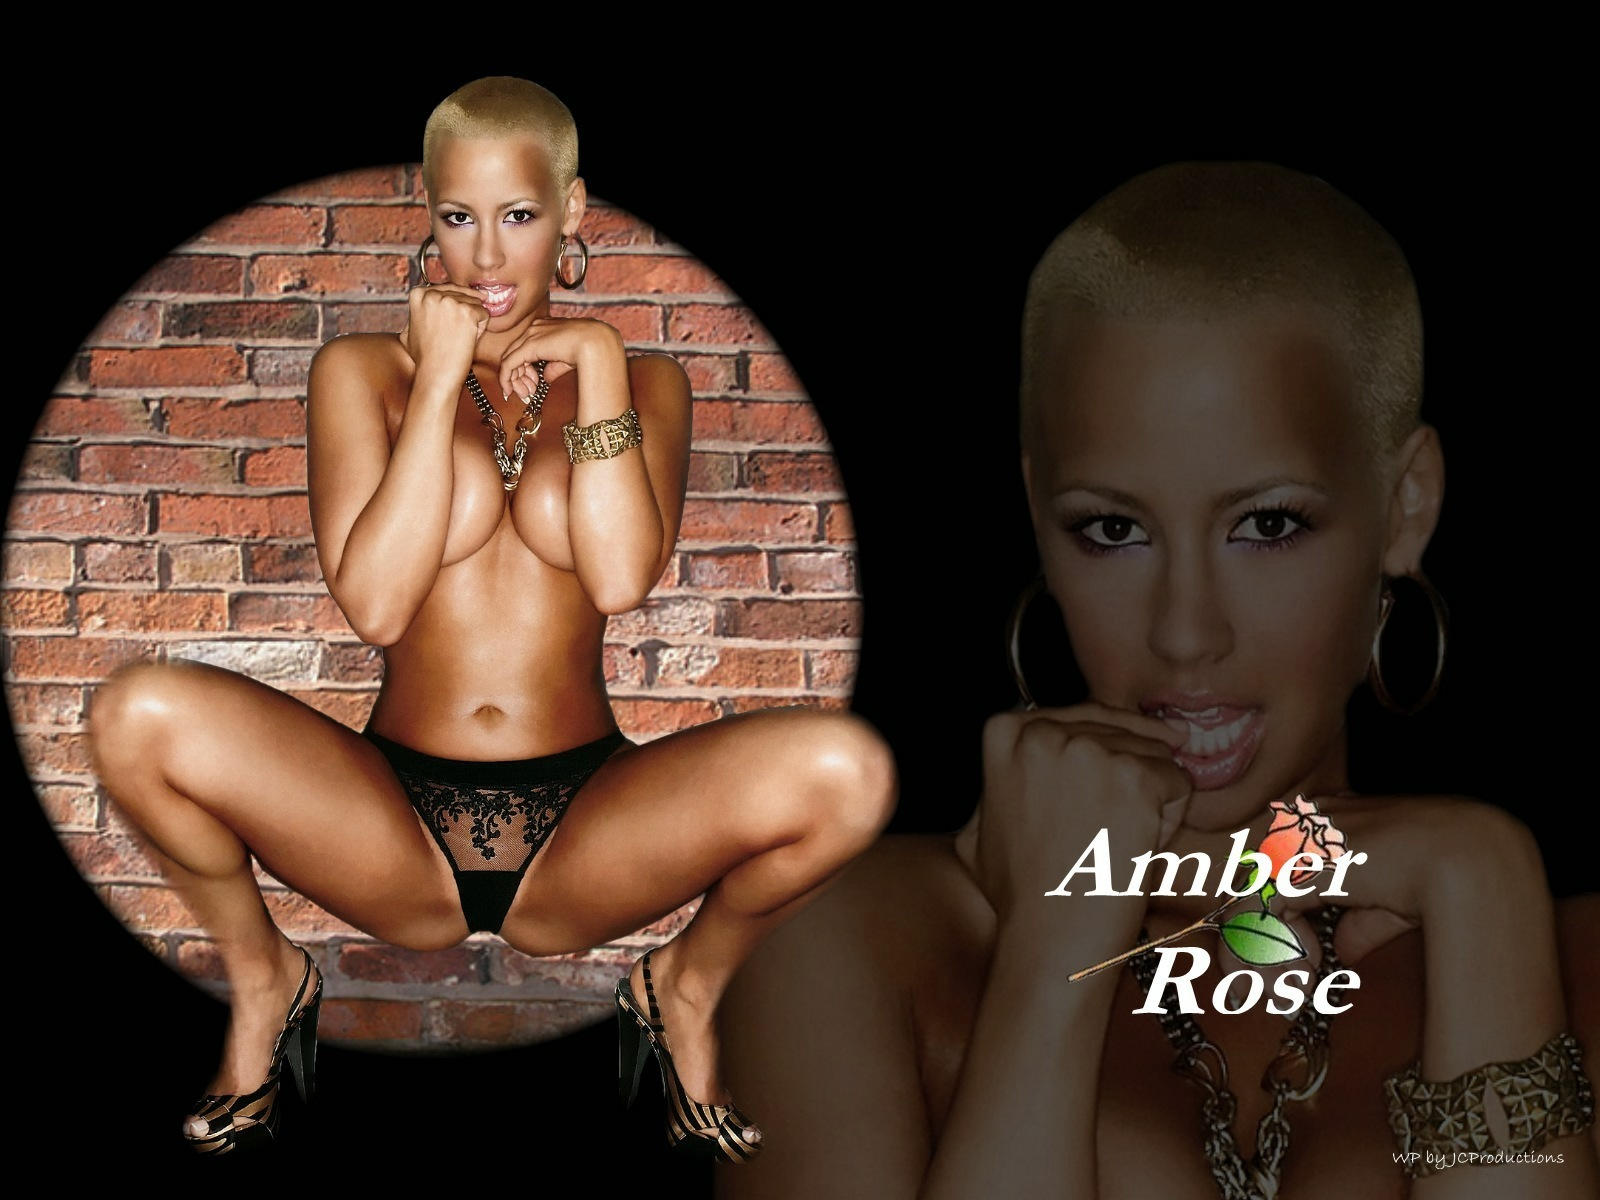 Amber Rose with her back up against the wall